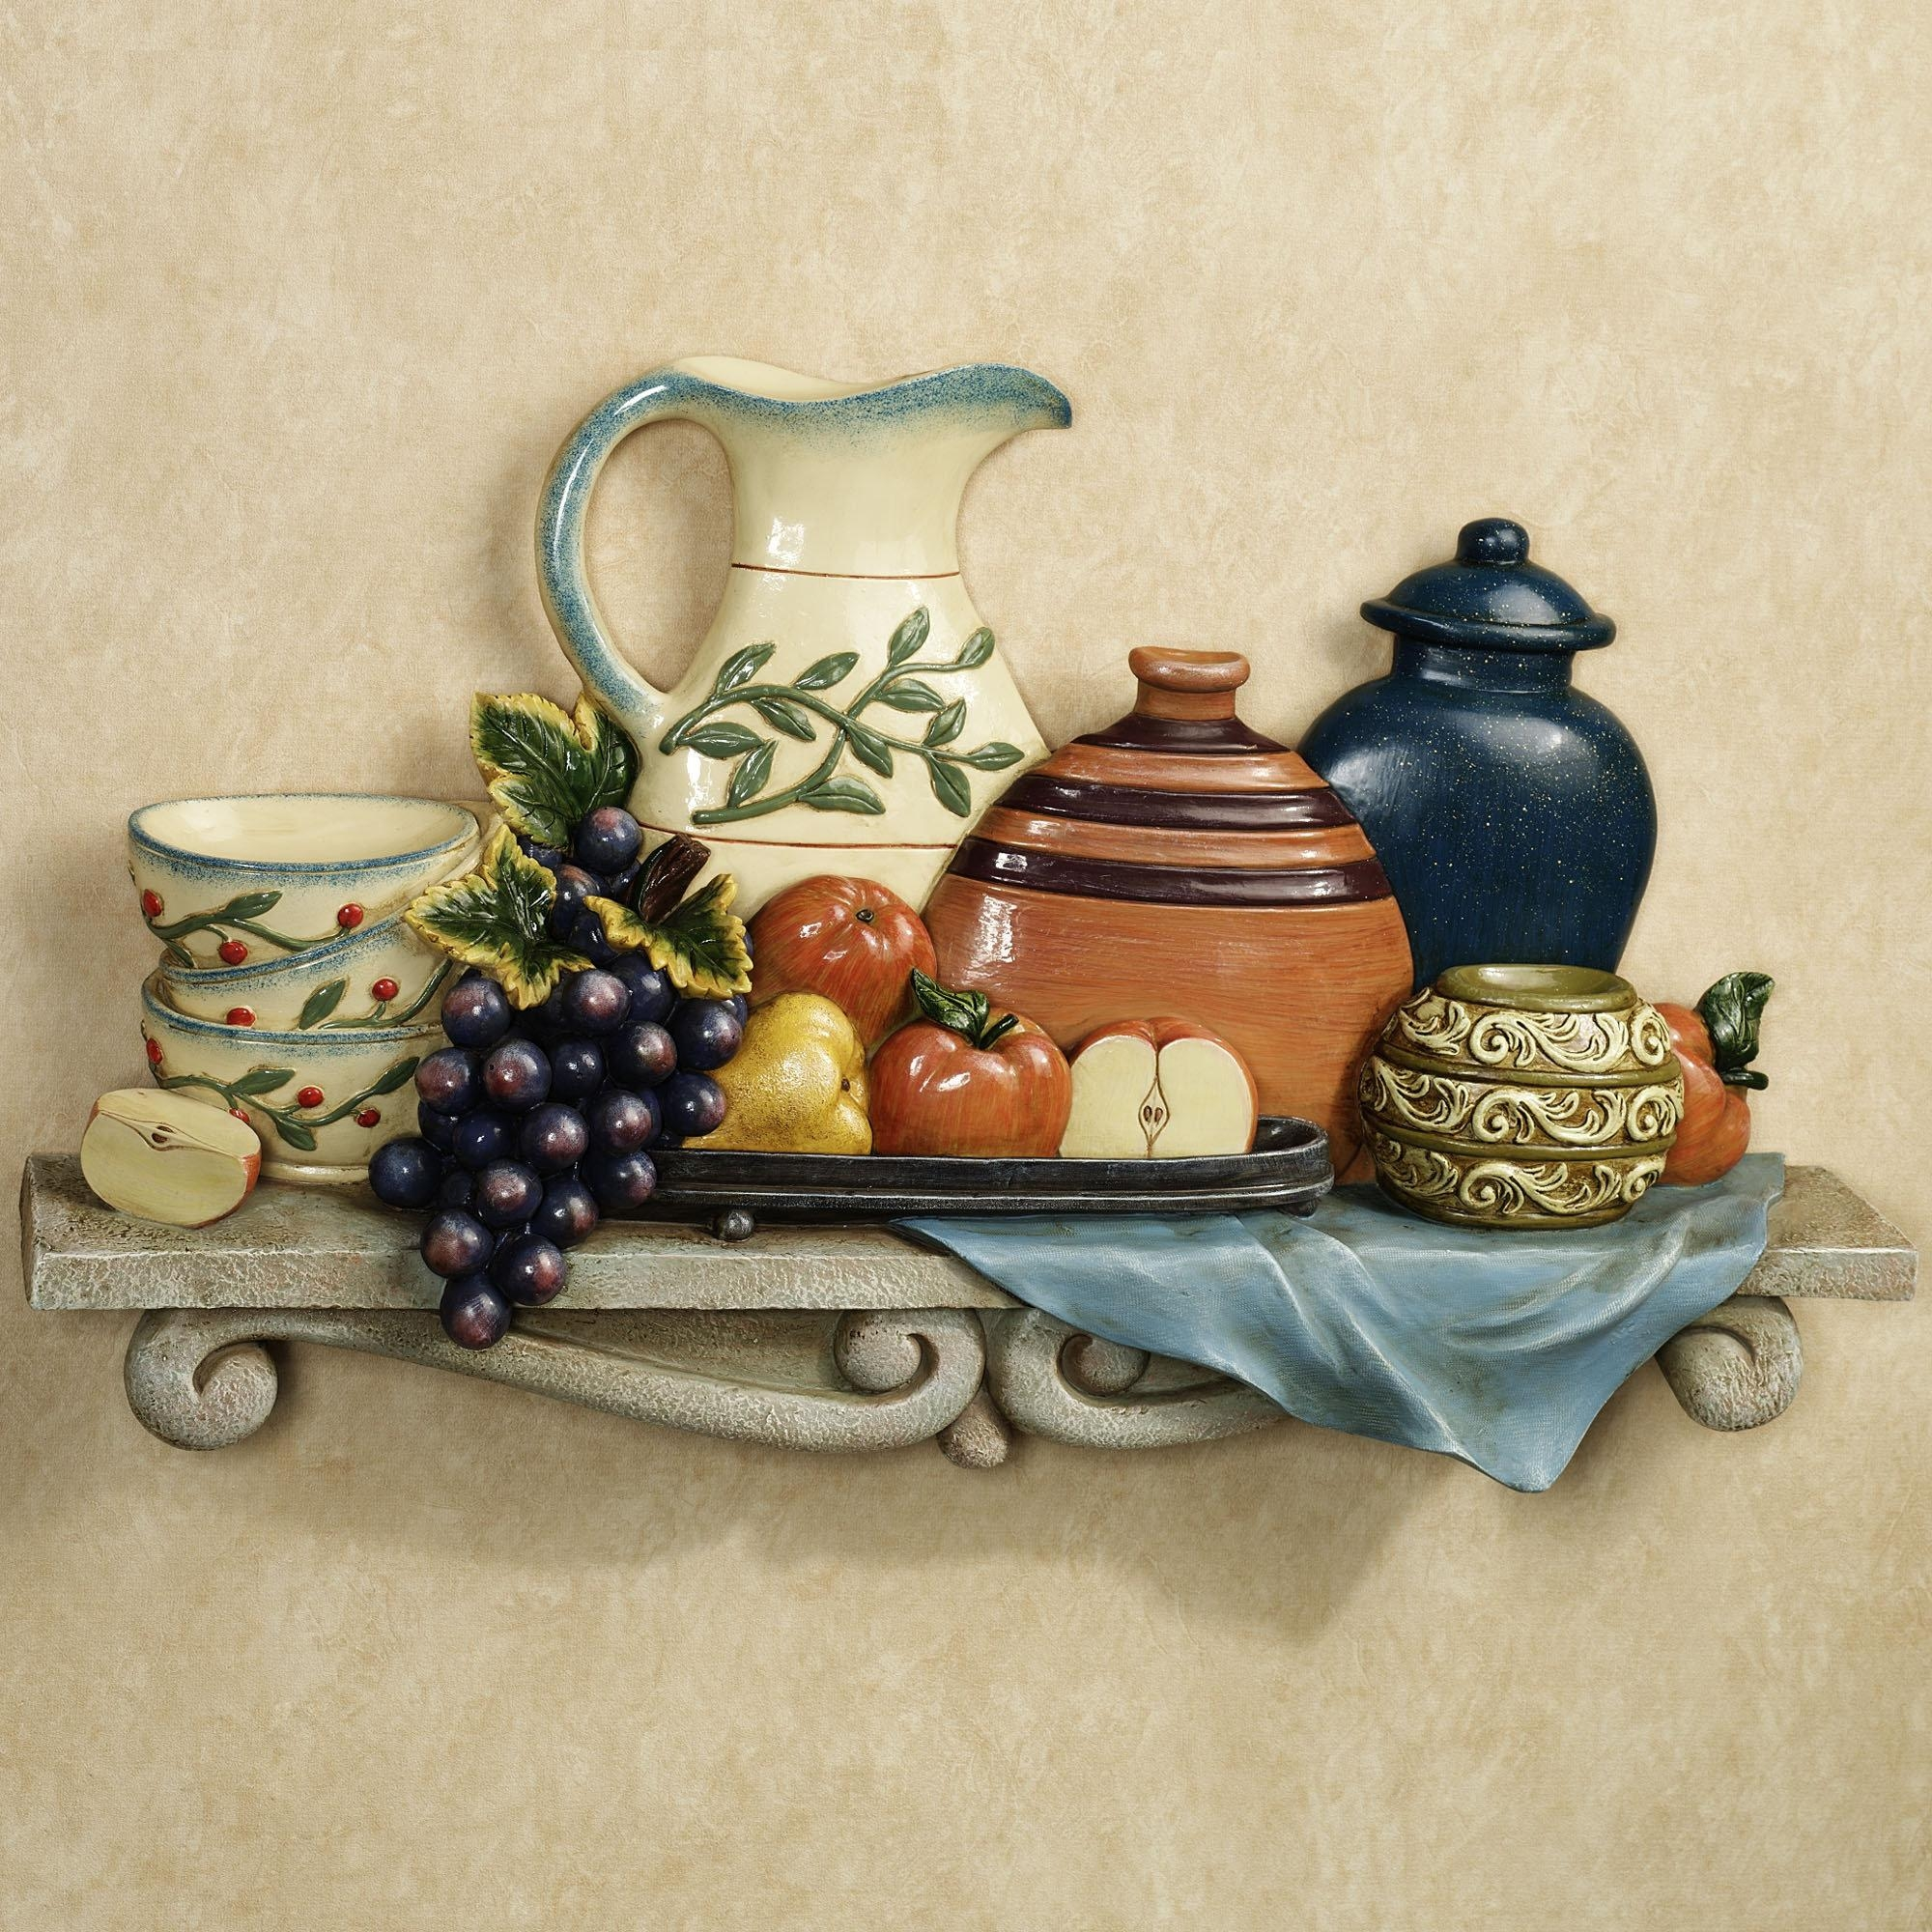 Kitchen Design Ideas: Tuscan Kitchen Wall Decor For Welcoming Inside Tuscan Wall Art Decor (Image 4 of 20)